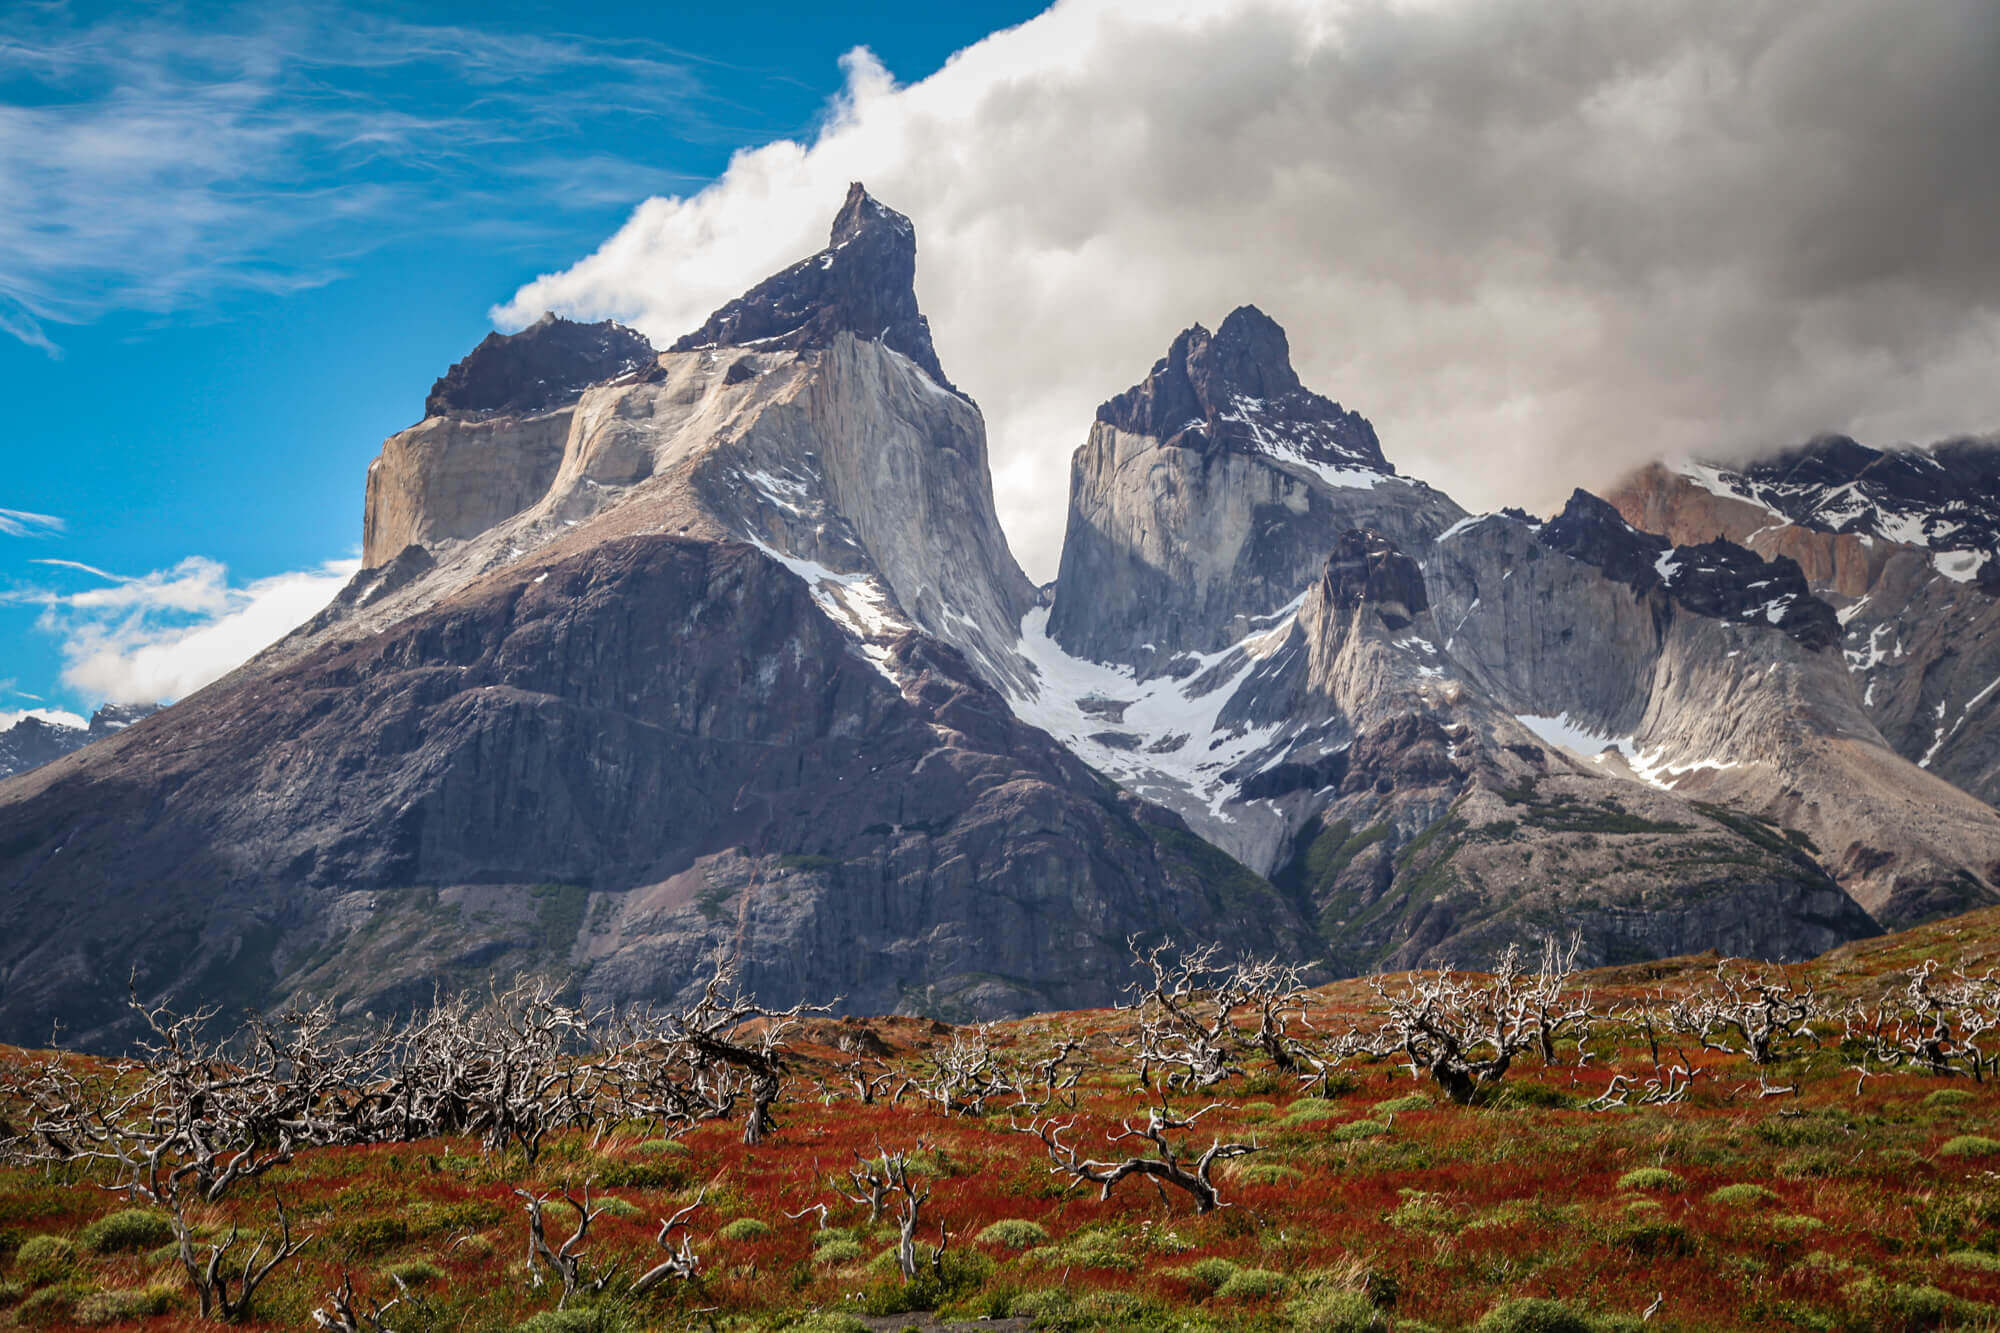 The Horns Torres del Paine Los Cuernos